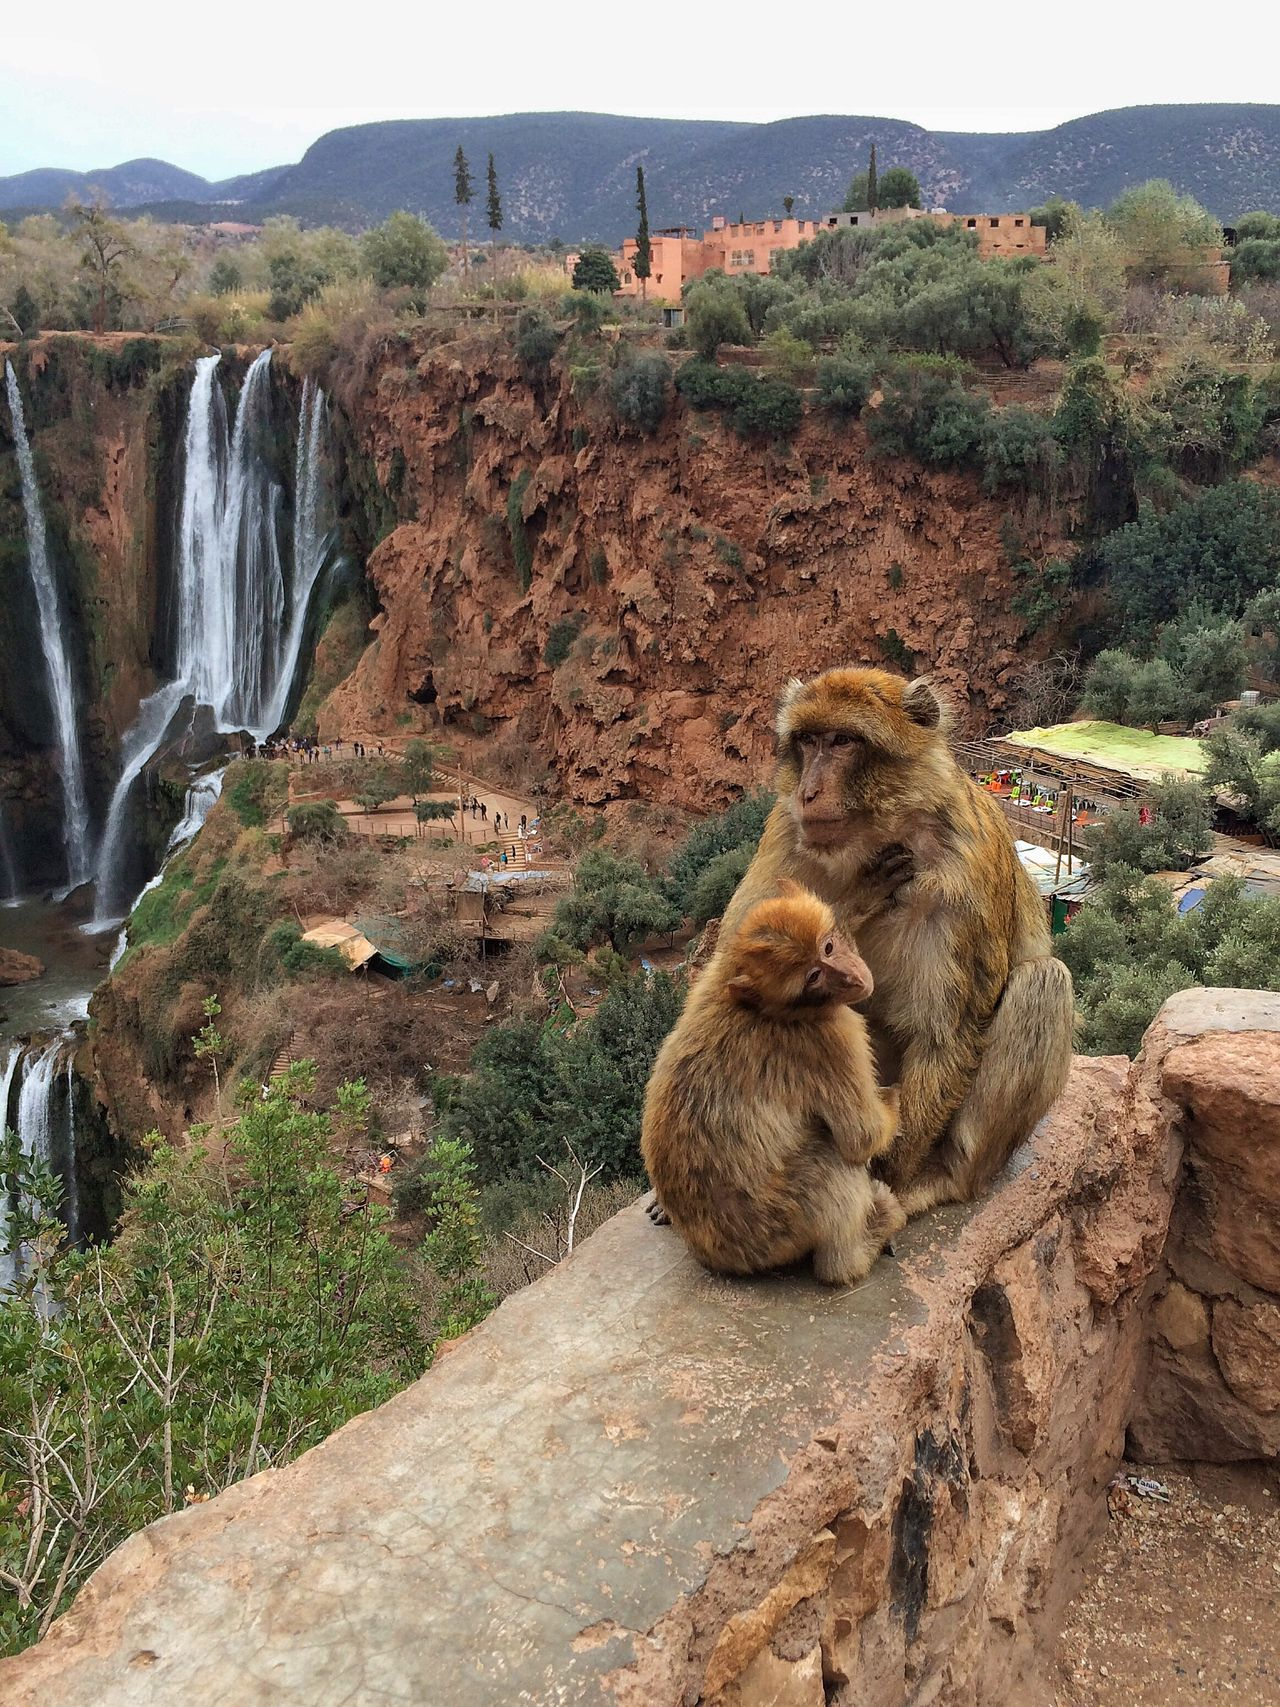 Monkies Hanging Out Check This Out Hello World Relaxing Enjoying Life View Marocco Scenic Mother Baby Wall